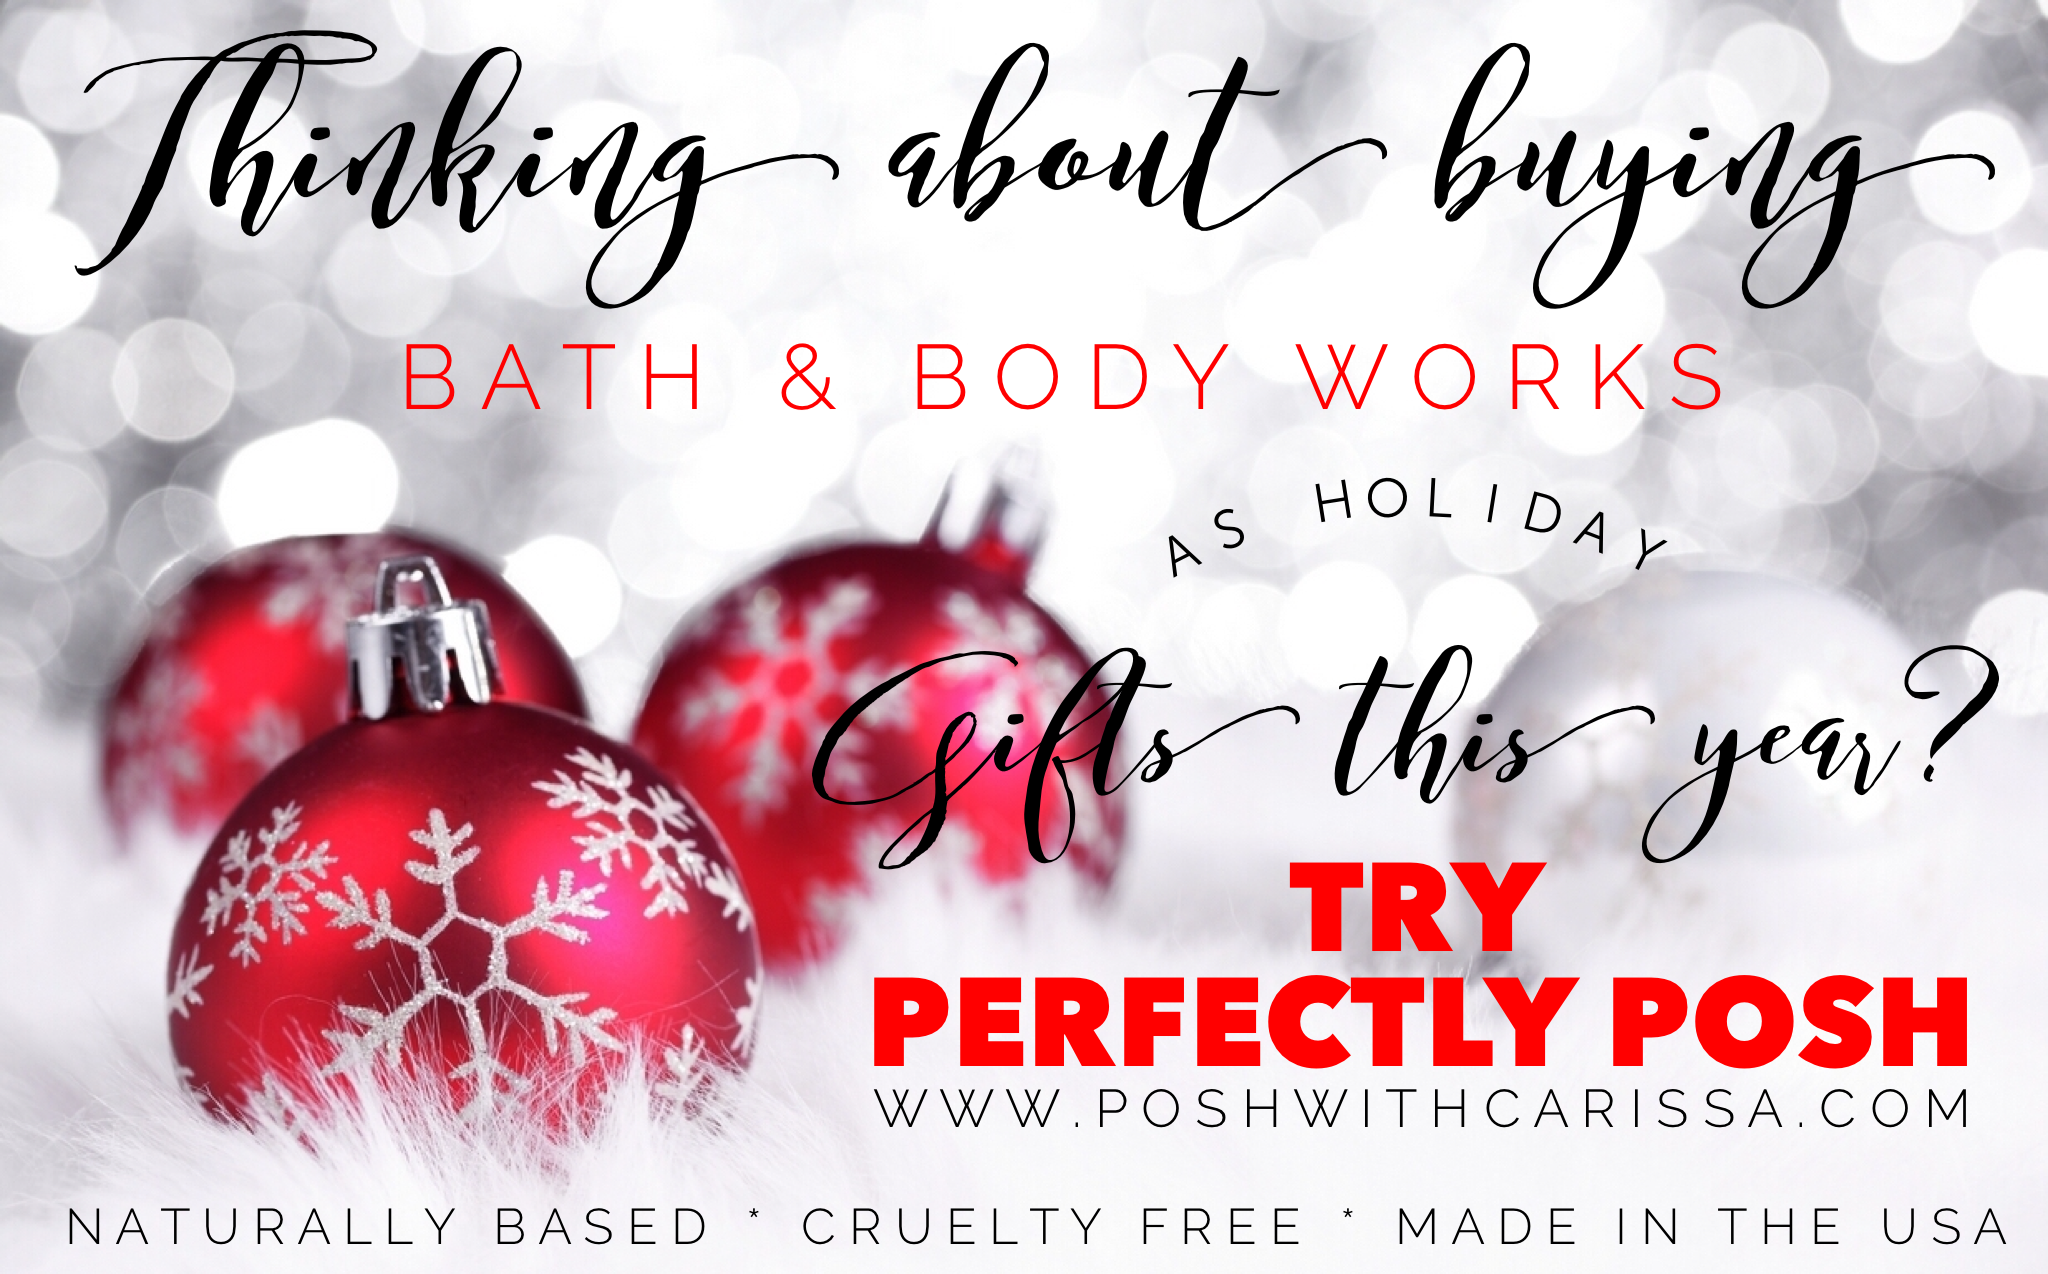 If you normally buy Bath & Body Works, Philosophy, or even those ...